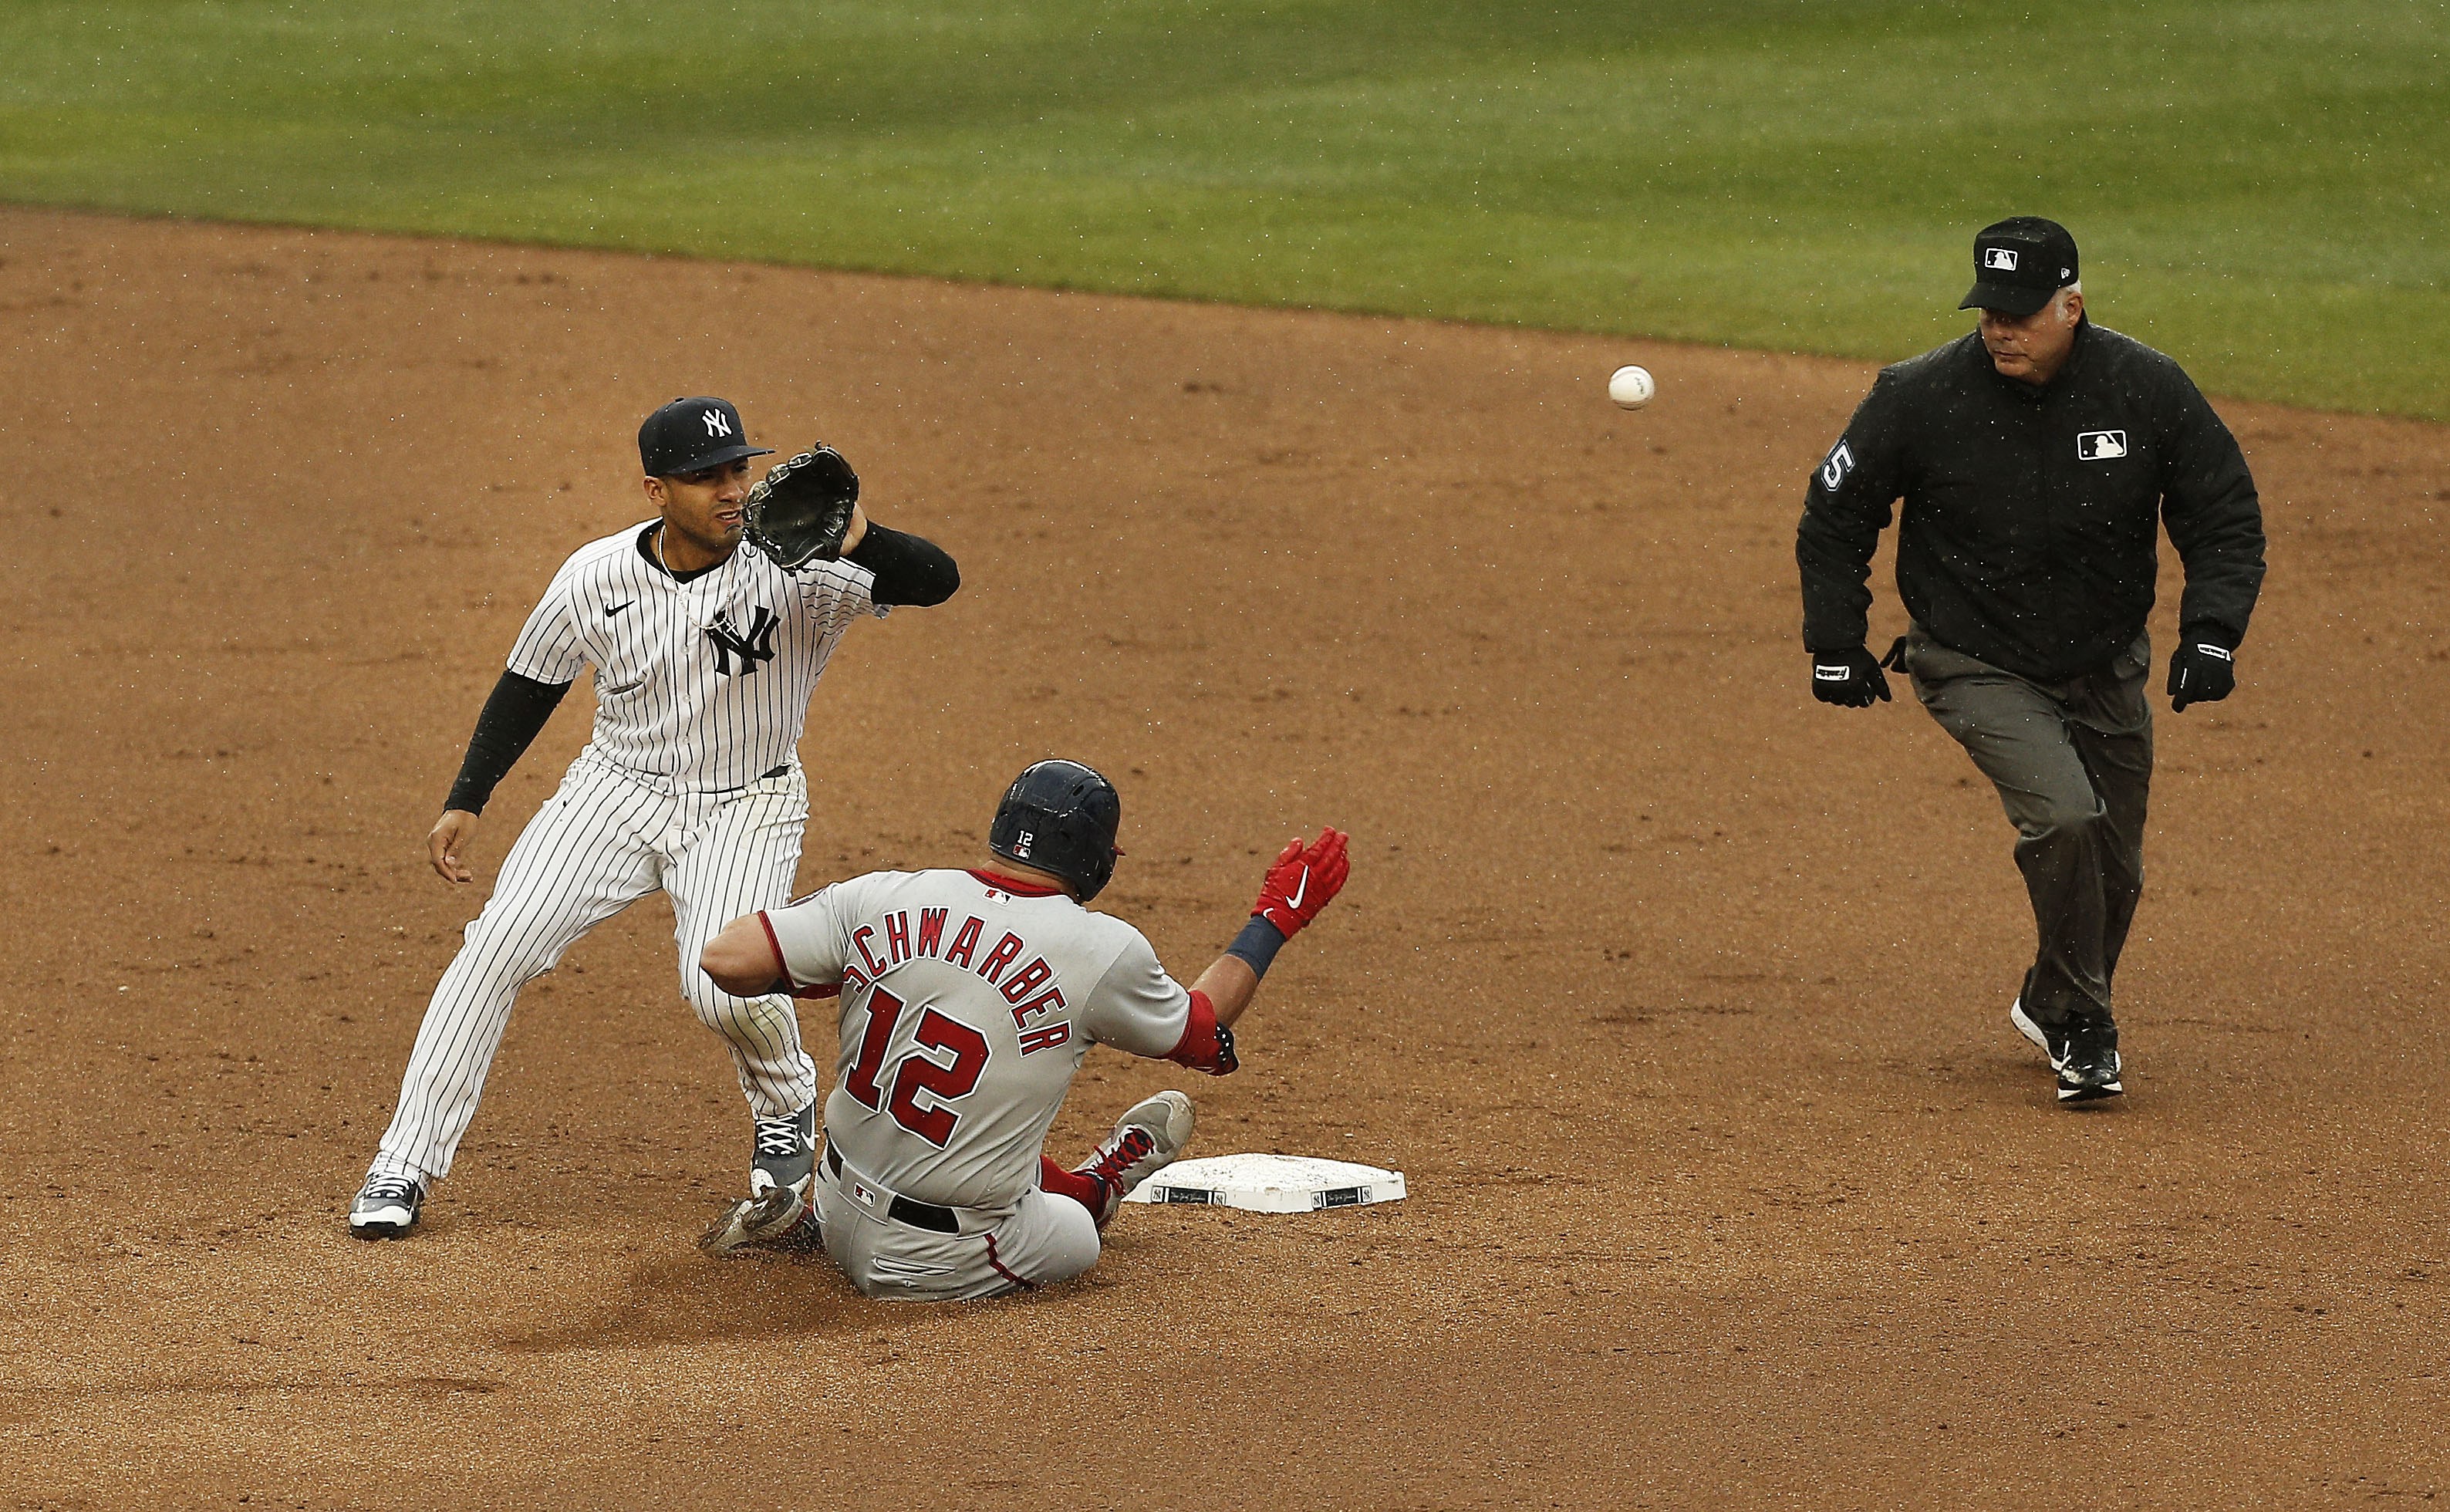 May 8, 2021; Bronx, New York, USA; Washington Nationals left fielder Kyle Schwarber (12) slides safely into second base after hitting a double against the New York Yankees during the sixth inning at Yankee Stadium. Mandatory Credit: Andy Marlin-USA TODAY Sports